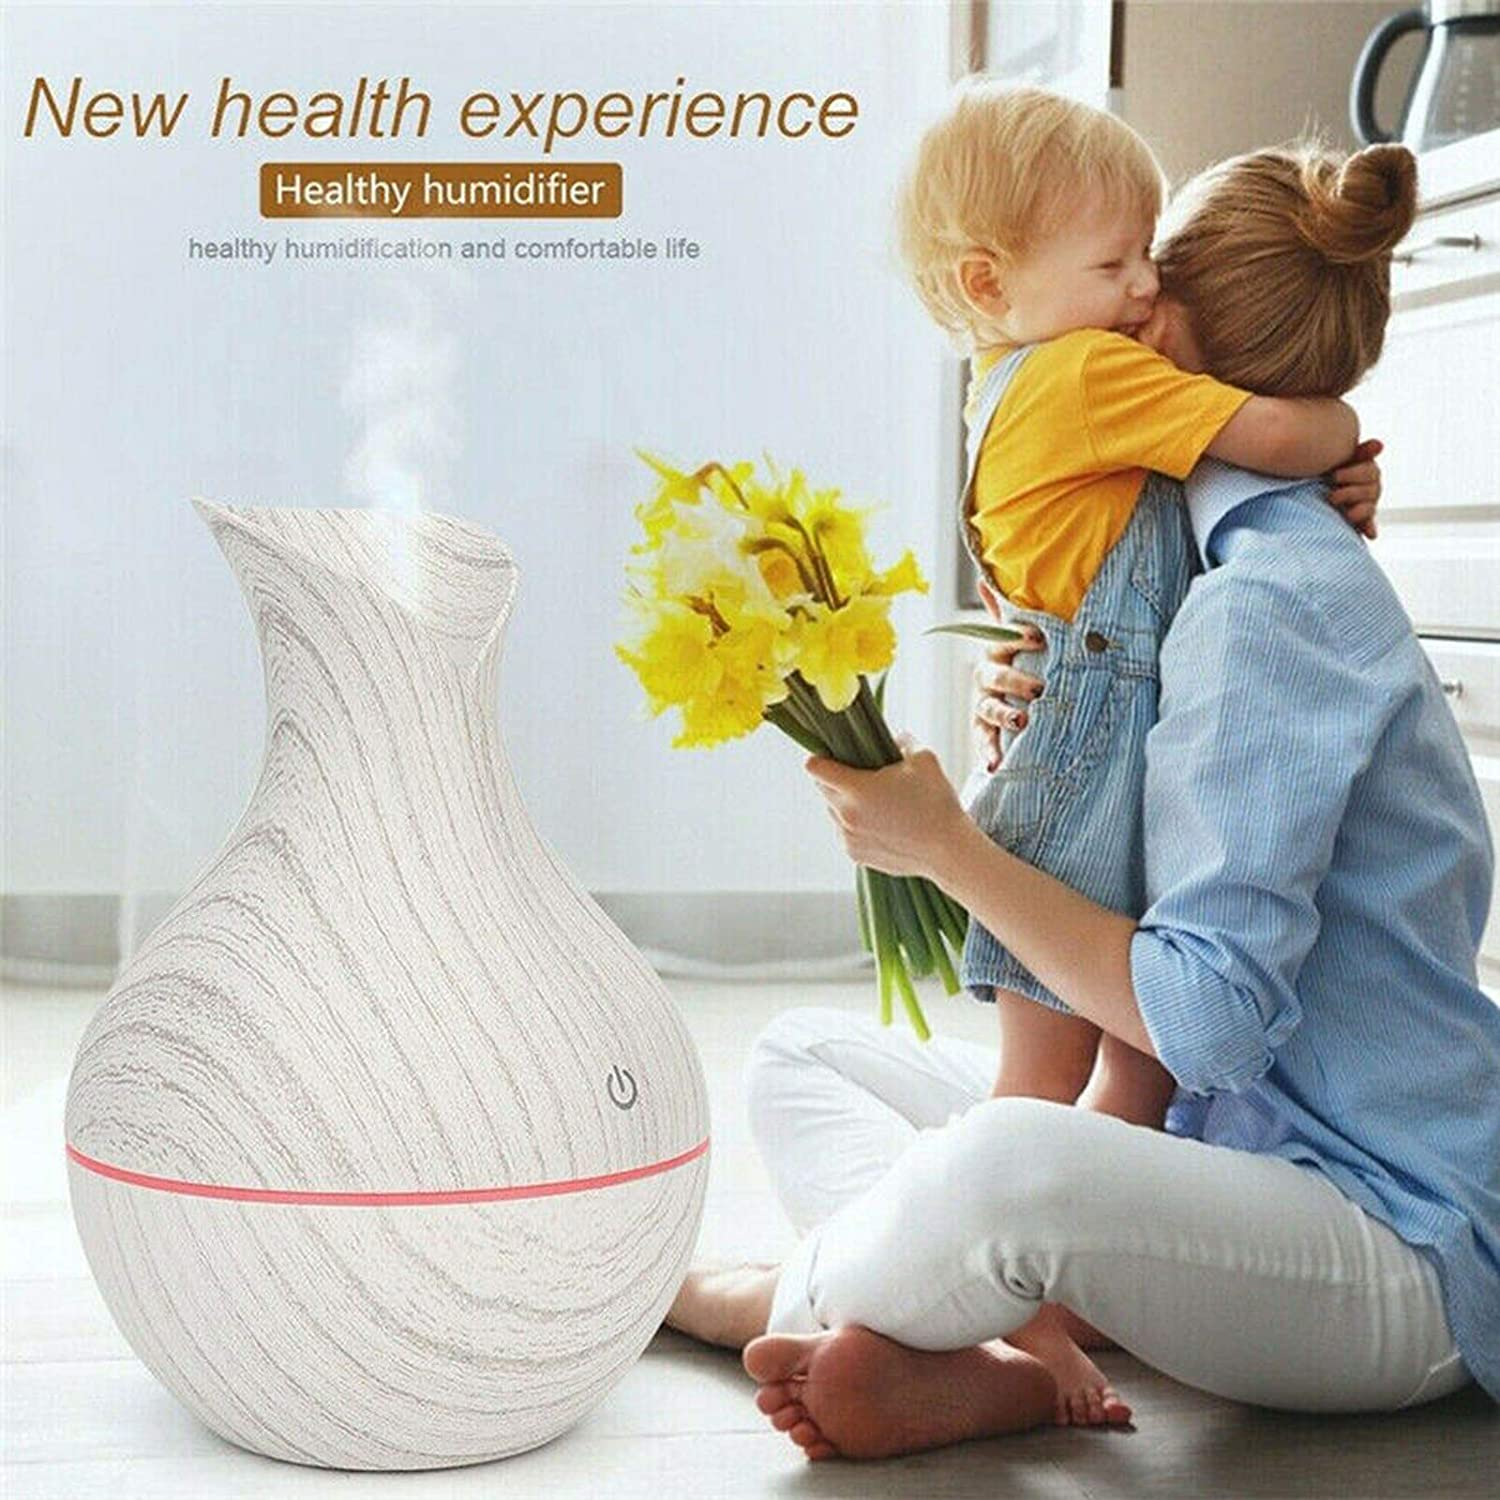 Hosafe 130ml Cool Mist Humidifiers Low Noise Humidifiers Waterless Auto-Off LED Essential Oil Diffuser Humidifier Aromatherapy Wood Grain Vase Aroma 300ml A1